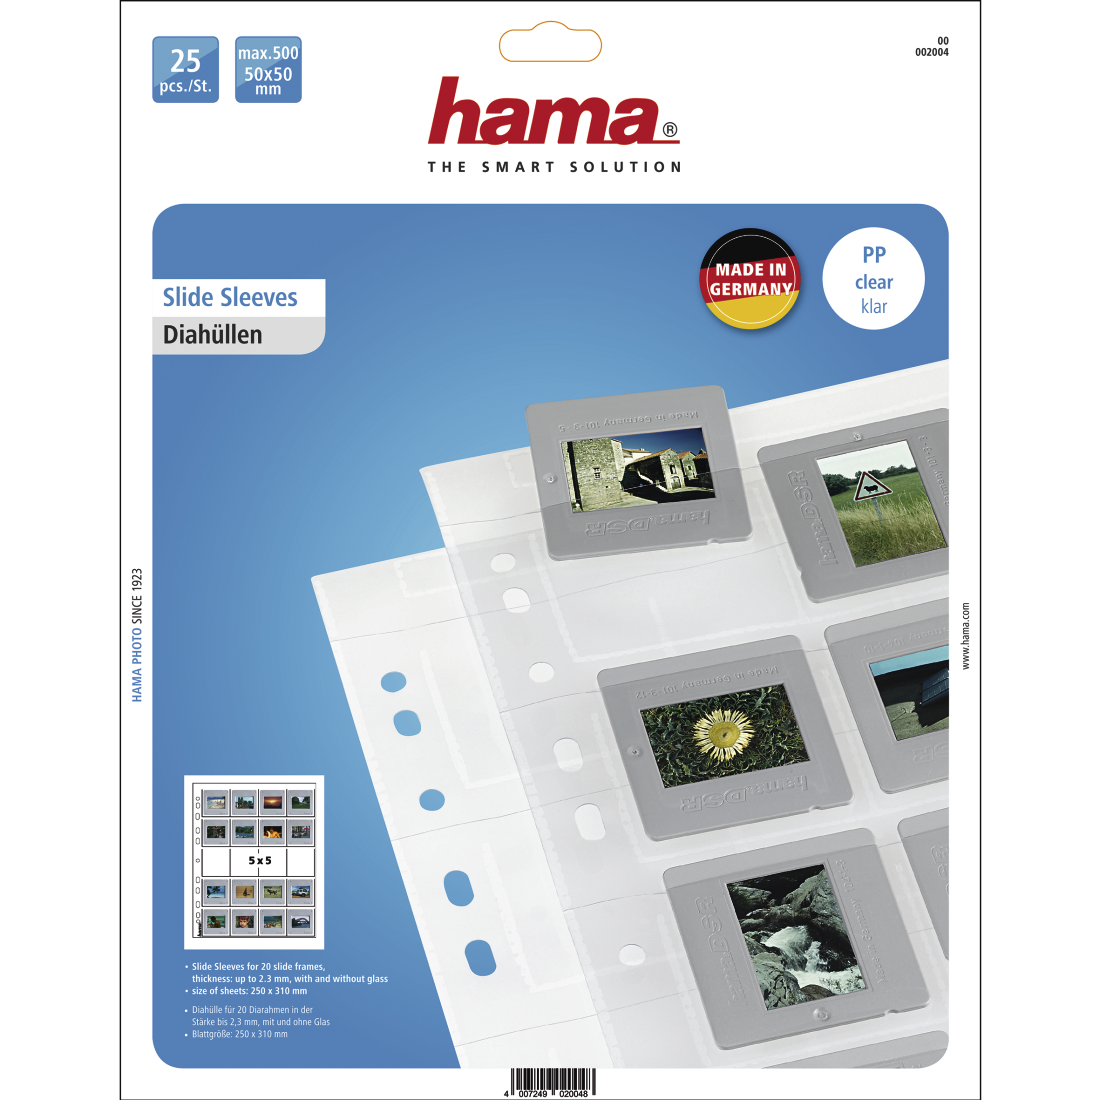 abx2 High-Res Image 2 - Hama, Slide Sleeves for 20 mounted slides with a size of 5x5 cm, 25 pieces